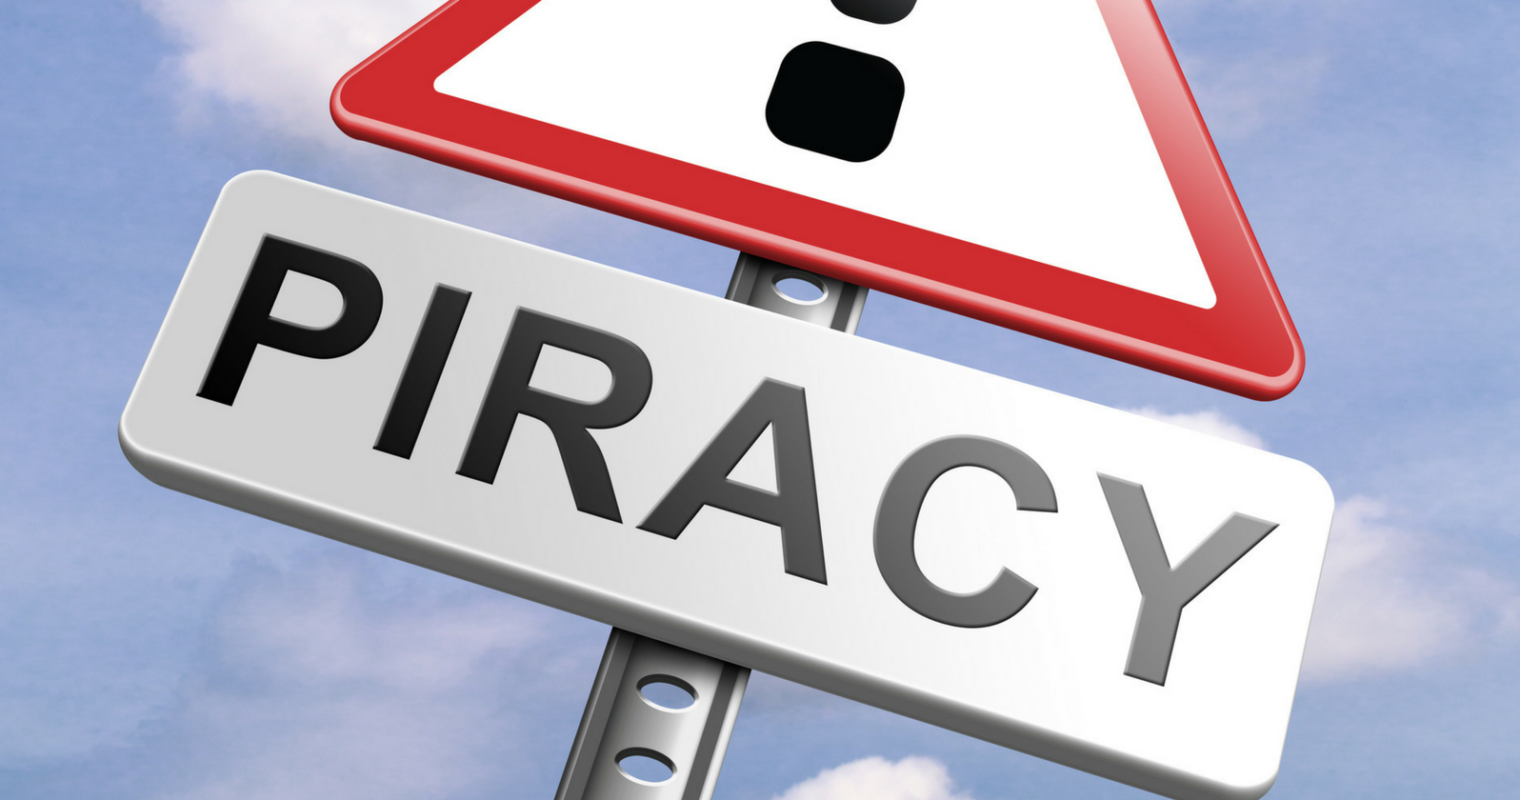 Google and Bing to Demote Pirate Websites in UK Search Results